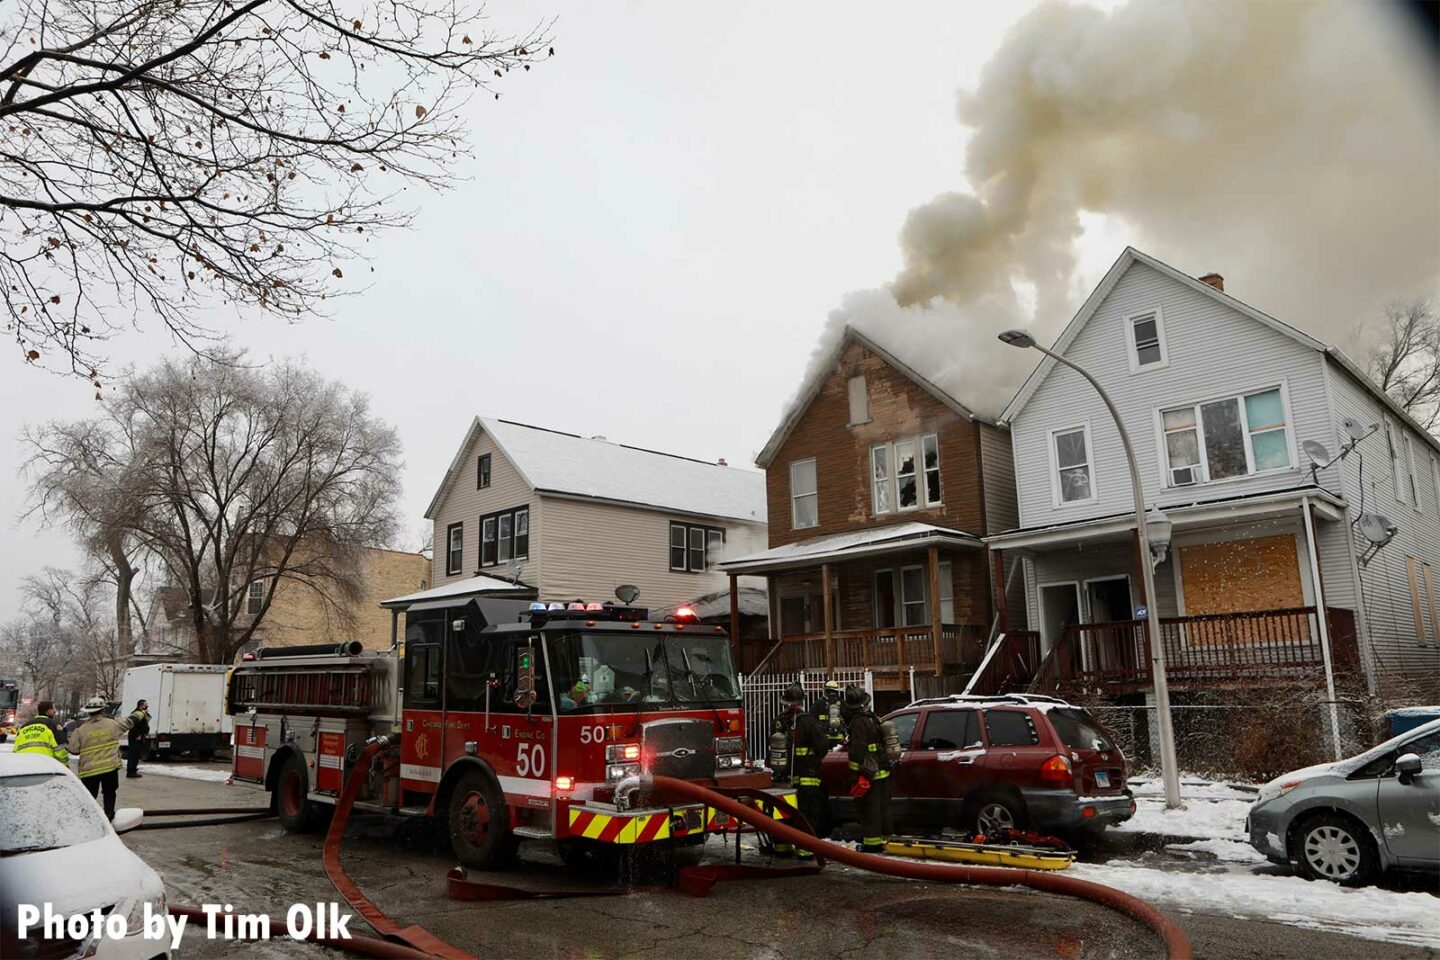 Smoke coming from the top of a house fire in Chicago